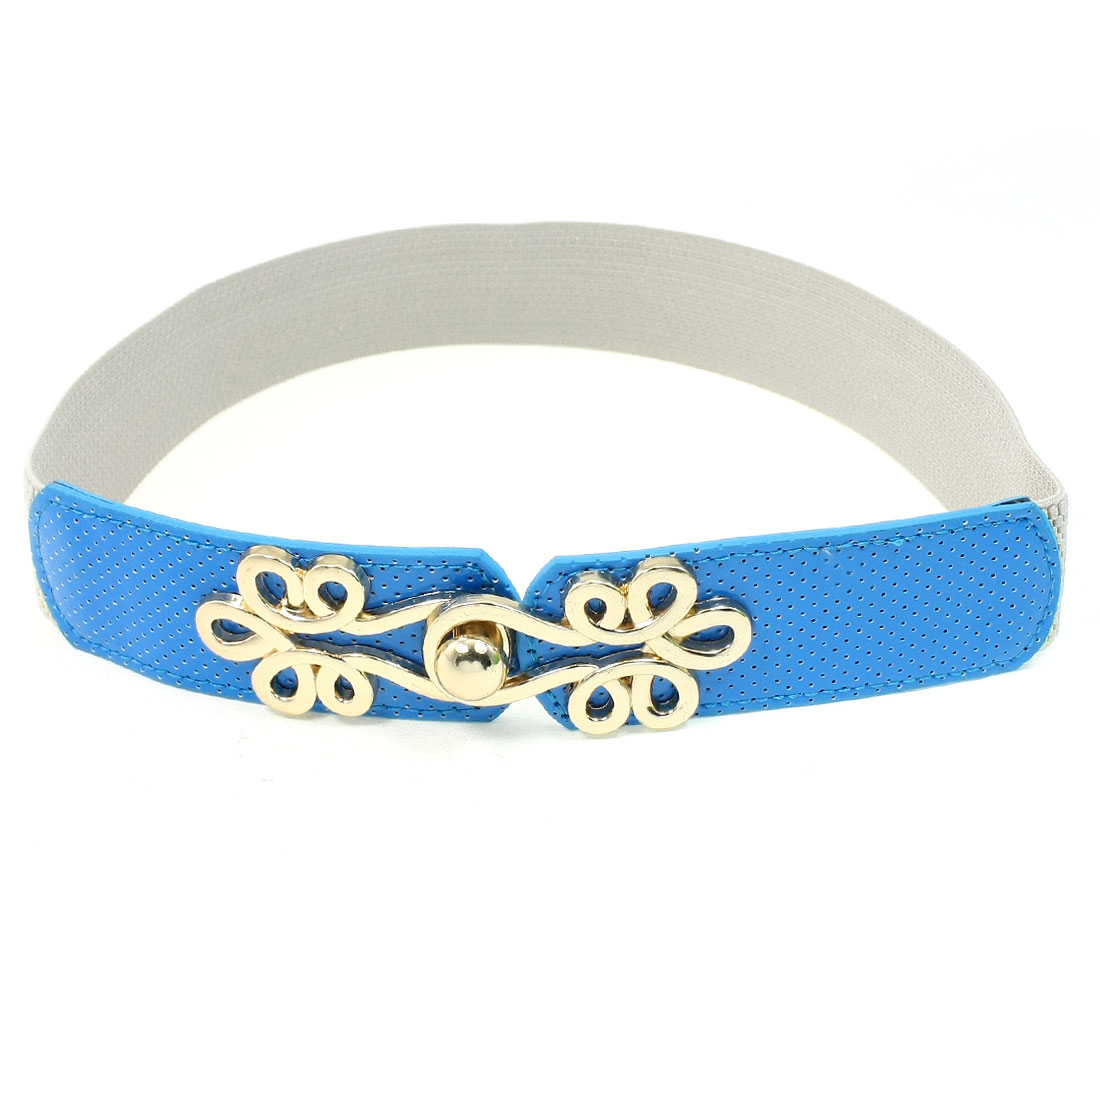 Gold Tone Interlocking Buckle Blue Faux Leather Elastic Waistbelt for Women